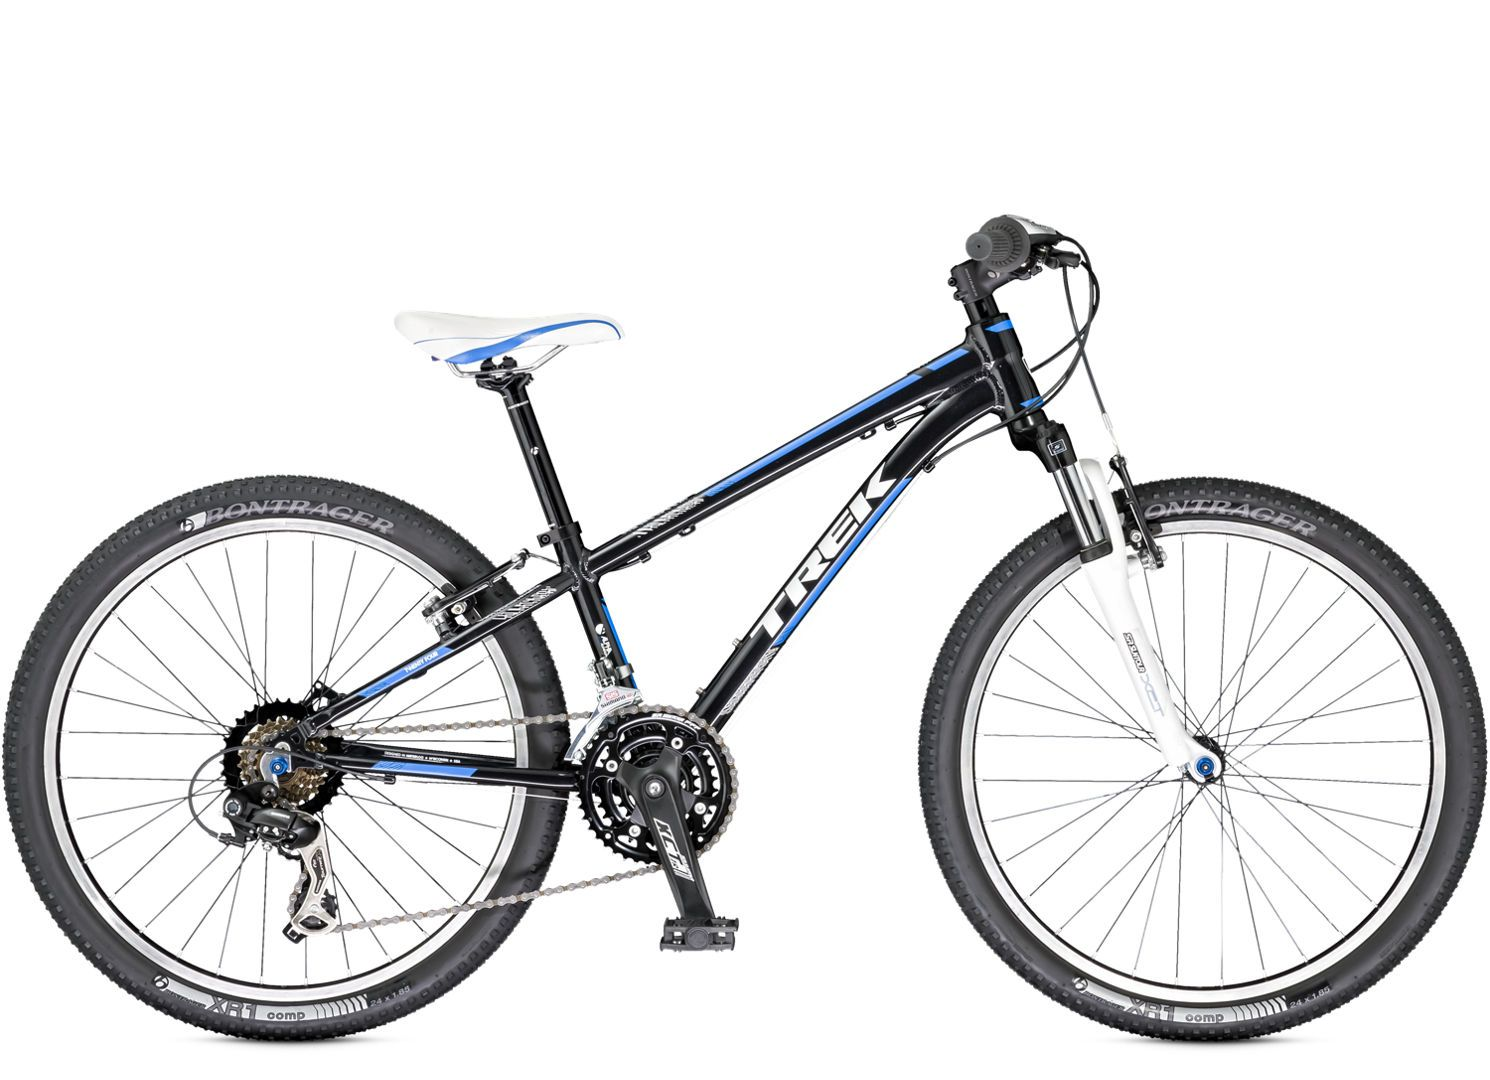 Sport Kids Superfly 24 Trek Kids Mountain Bikes Are The Real Deal With Light Frames Knobby Tires Quality Parts Kids Mountain Bikes Trek Bicycle Kids Bike